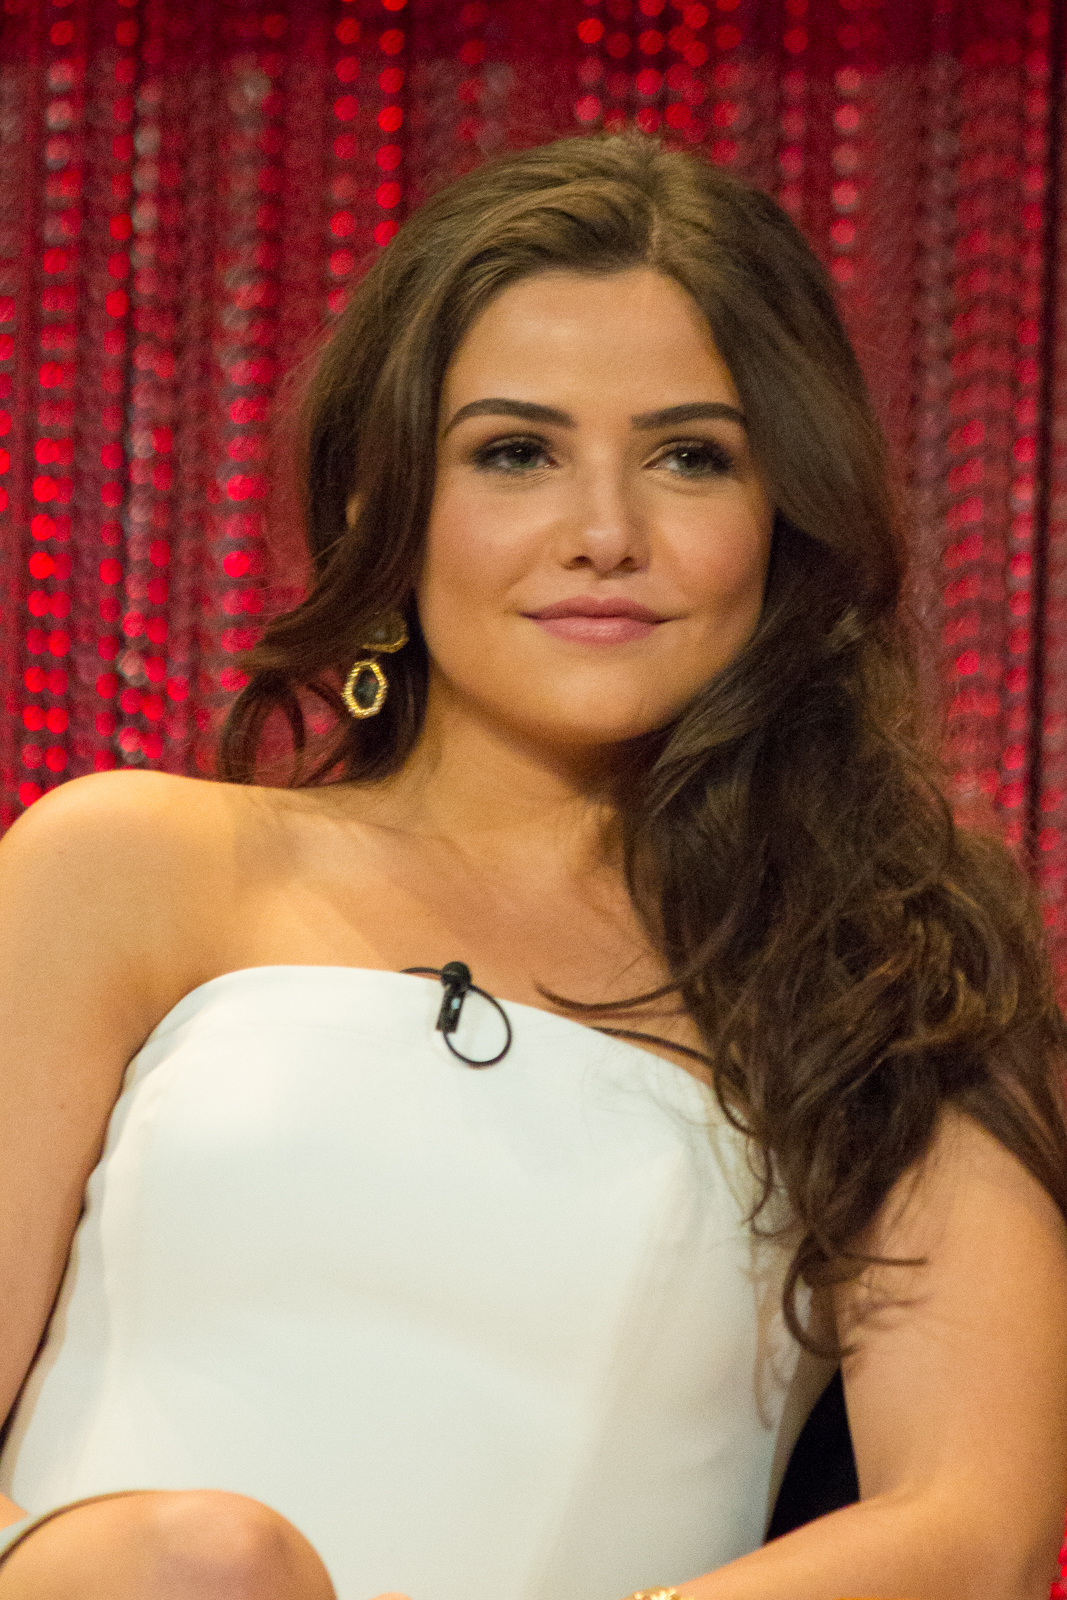 The 23-year old daughter of father John Campbell and mother Georganne Campbell Danielle Campbell in 2018 photo. Danielle Campbell earned a  million dollar salary - leaving the net worth at 0.5 million in 2018